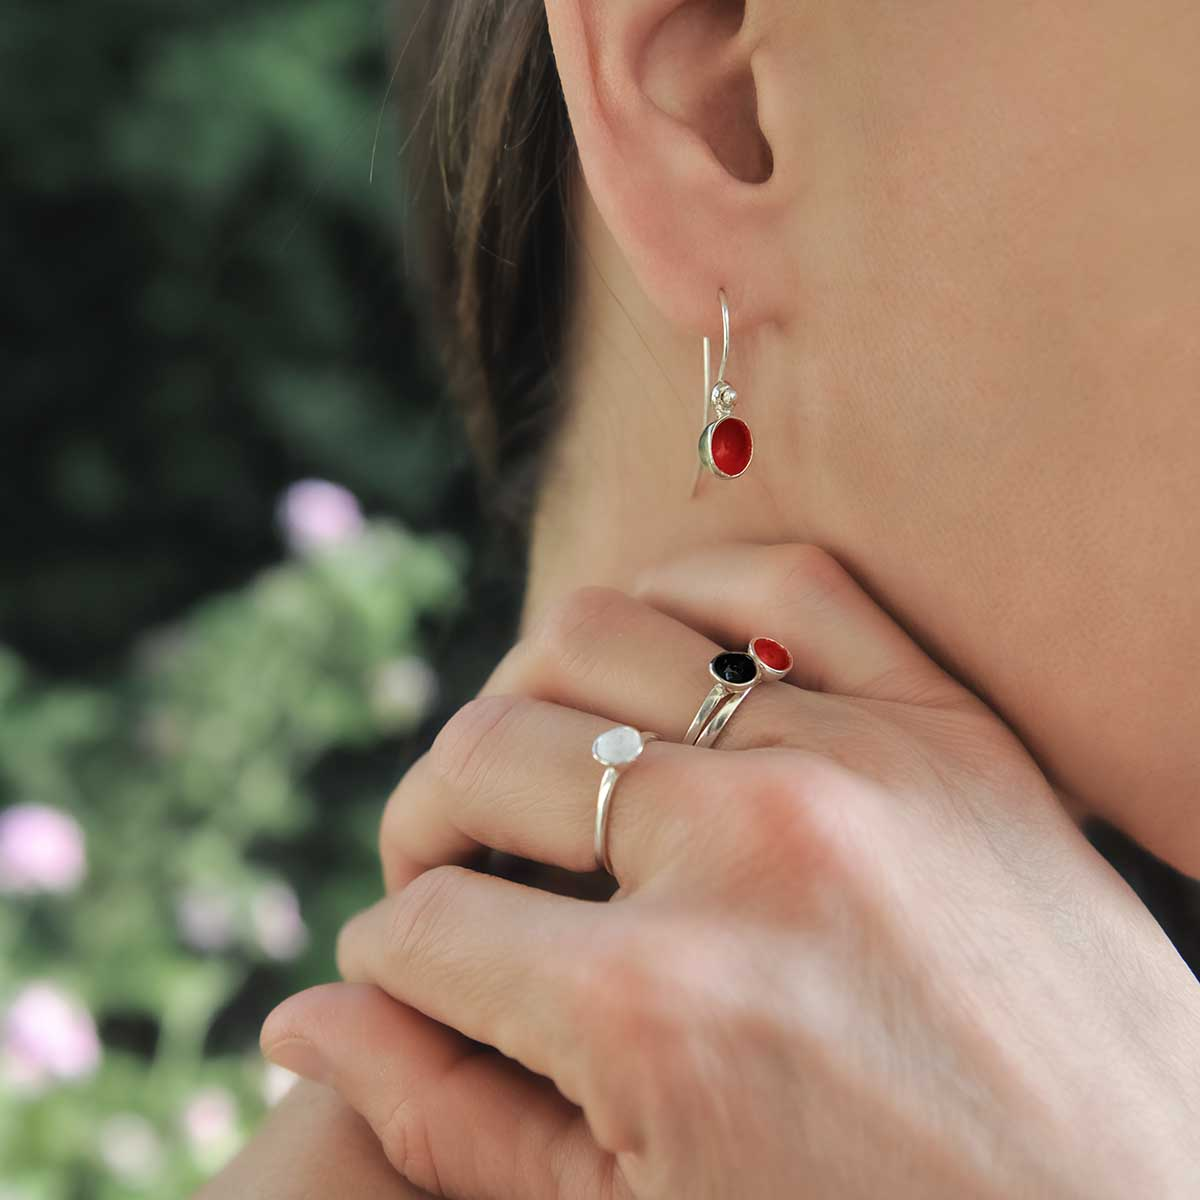 """""""Seeds and Pits"""" earrings in sterling silver, colored with enamel paint, match with """"Dots"""" rings. Design and handmade for Bead A Boo jewelry by Katerina Glinou."""